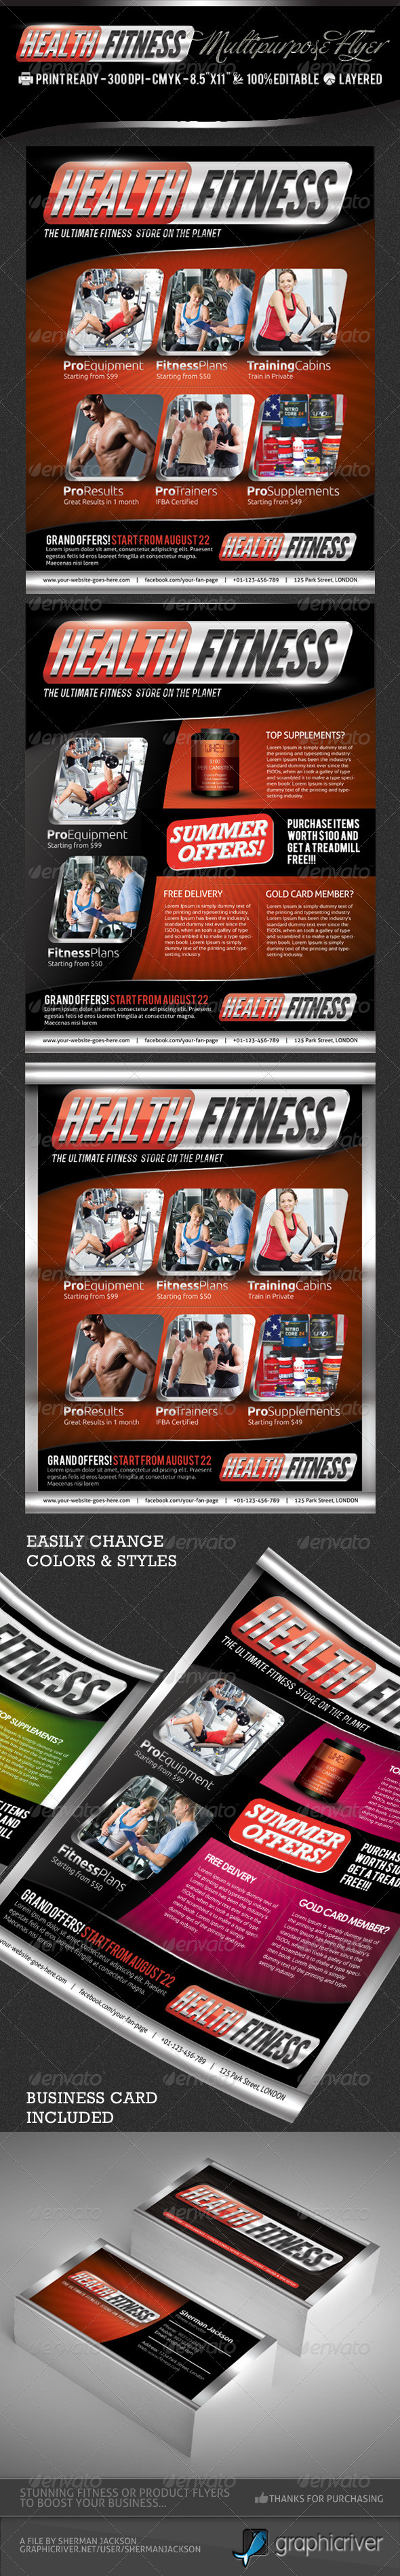 GraphicRiver Health & Fitness Pro Flyer & Business Card PSD 2652193